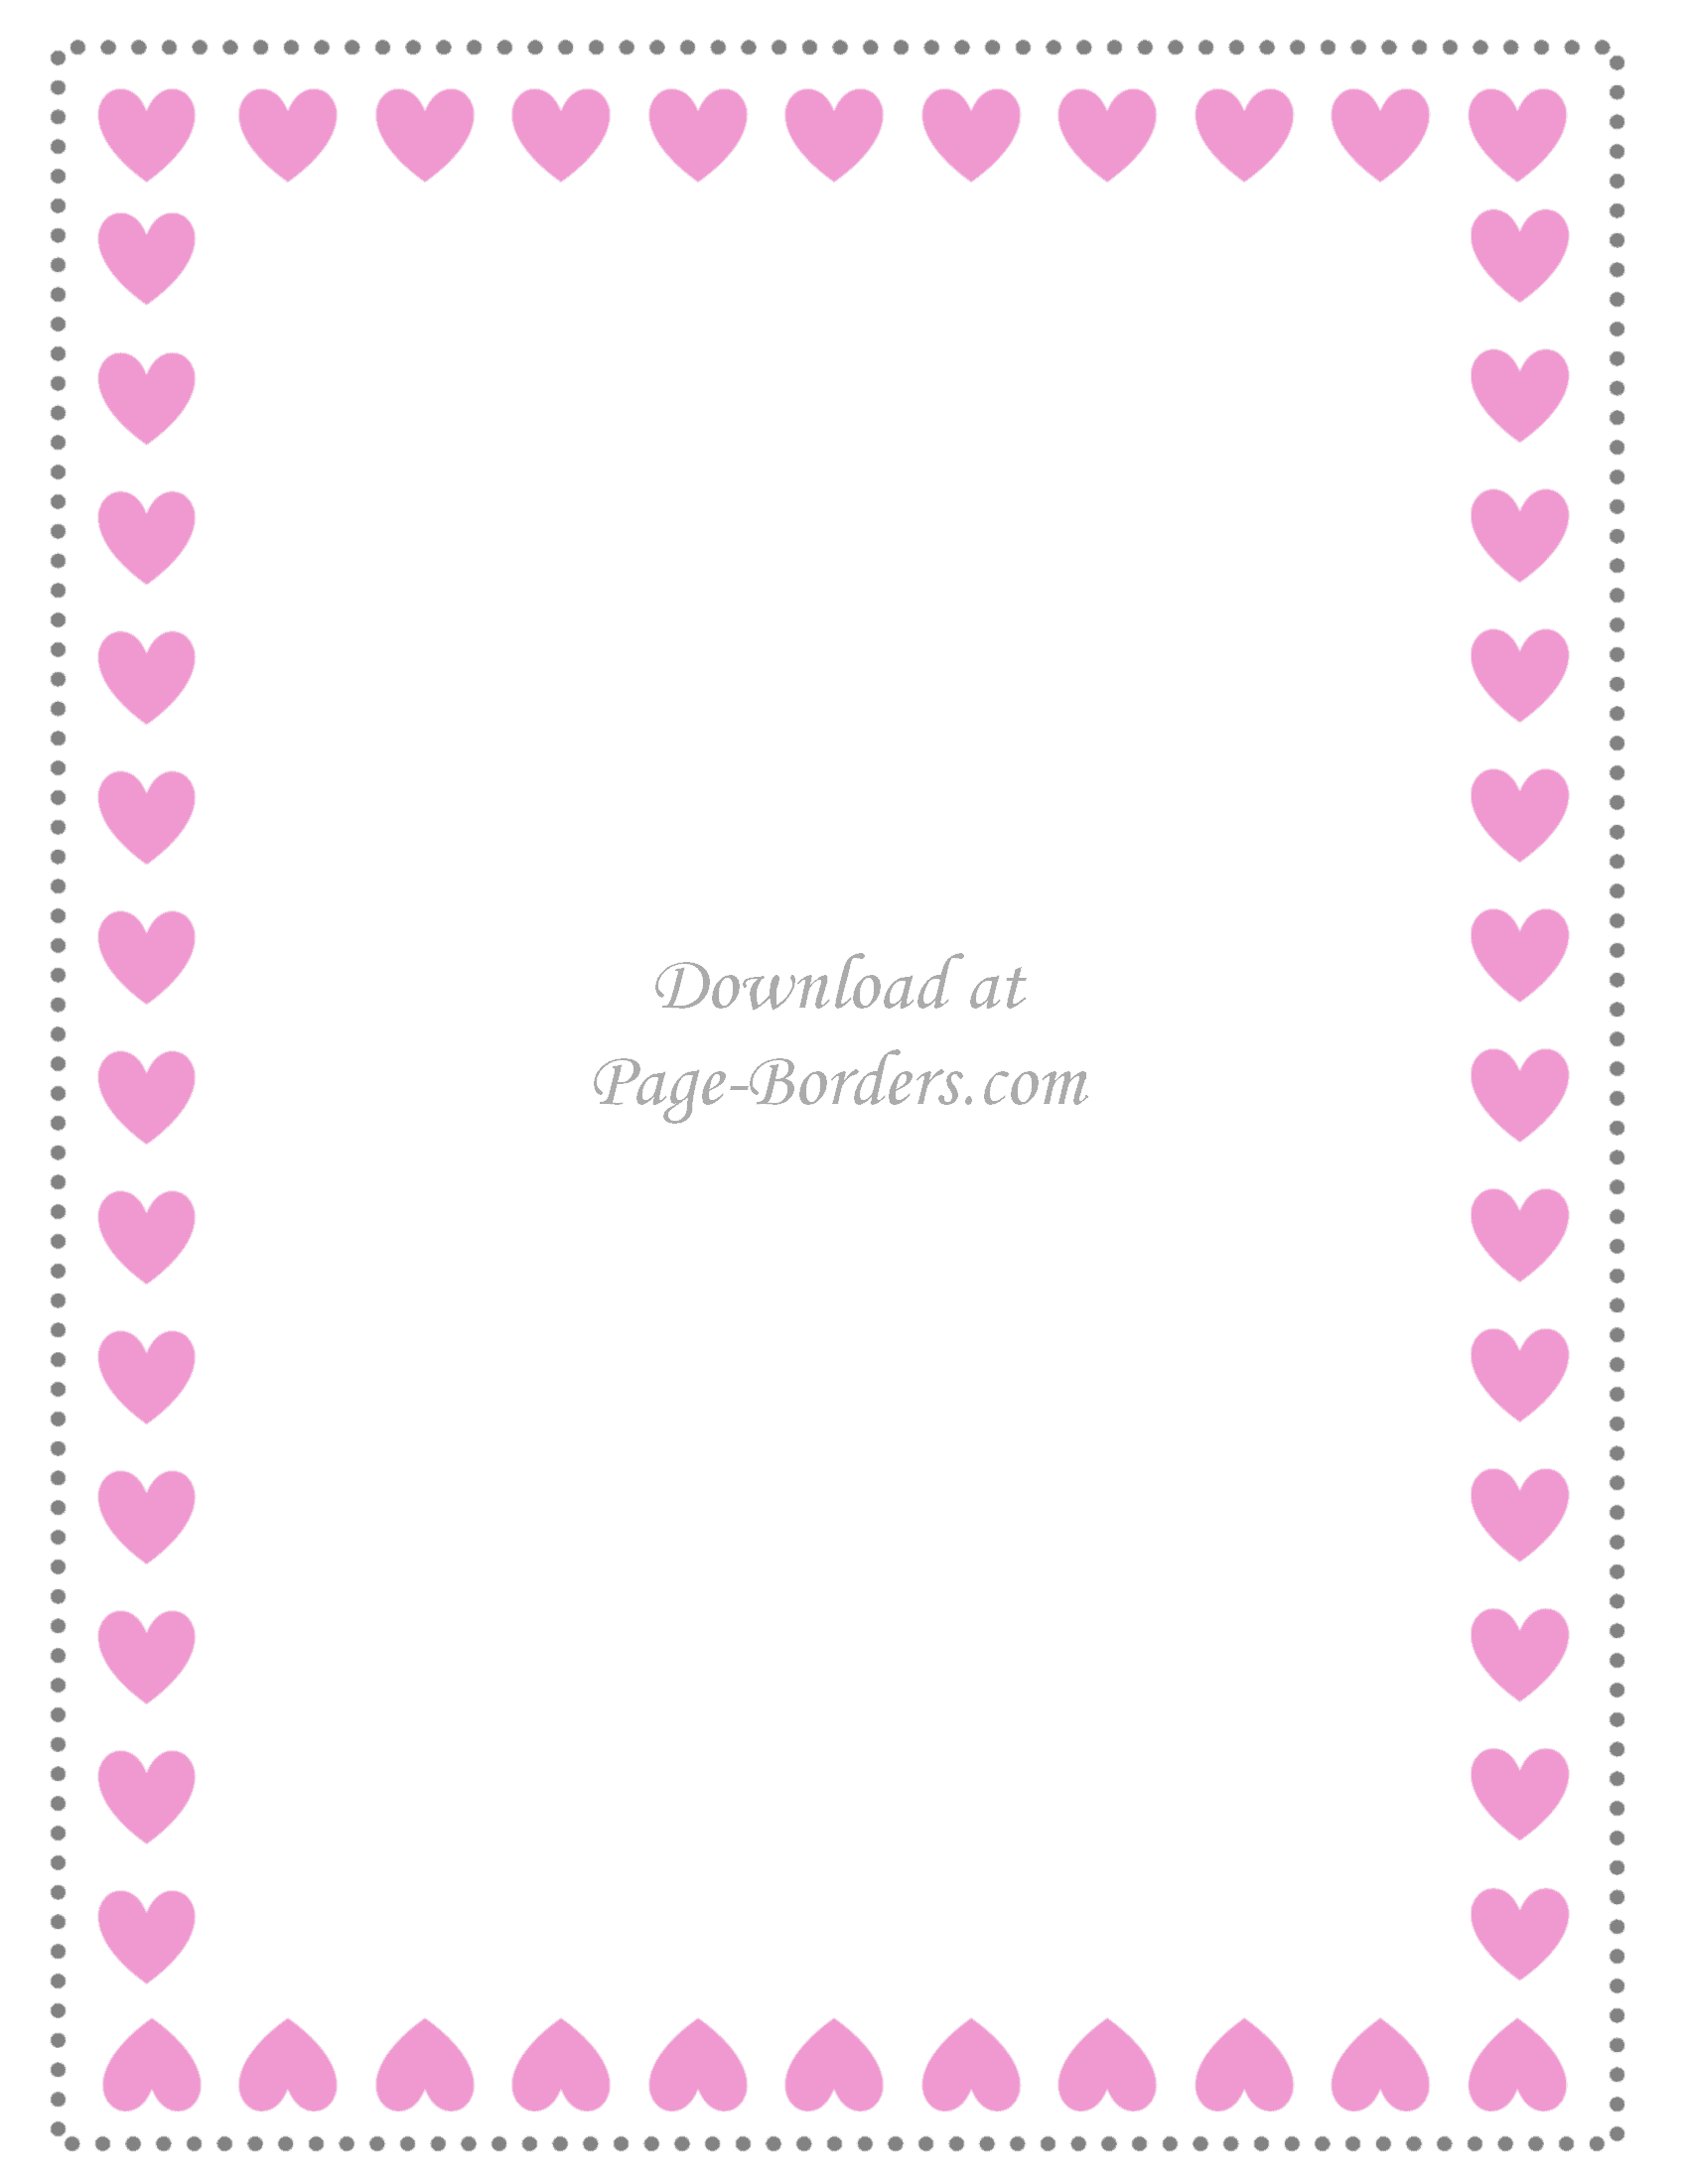 Heart border with pink hearts